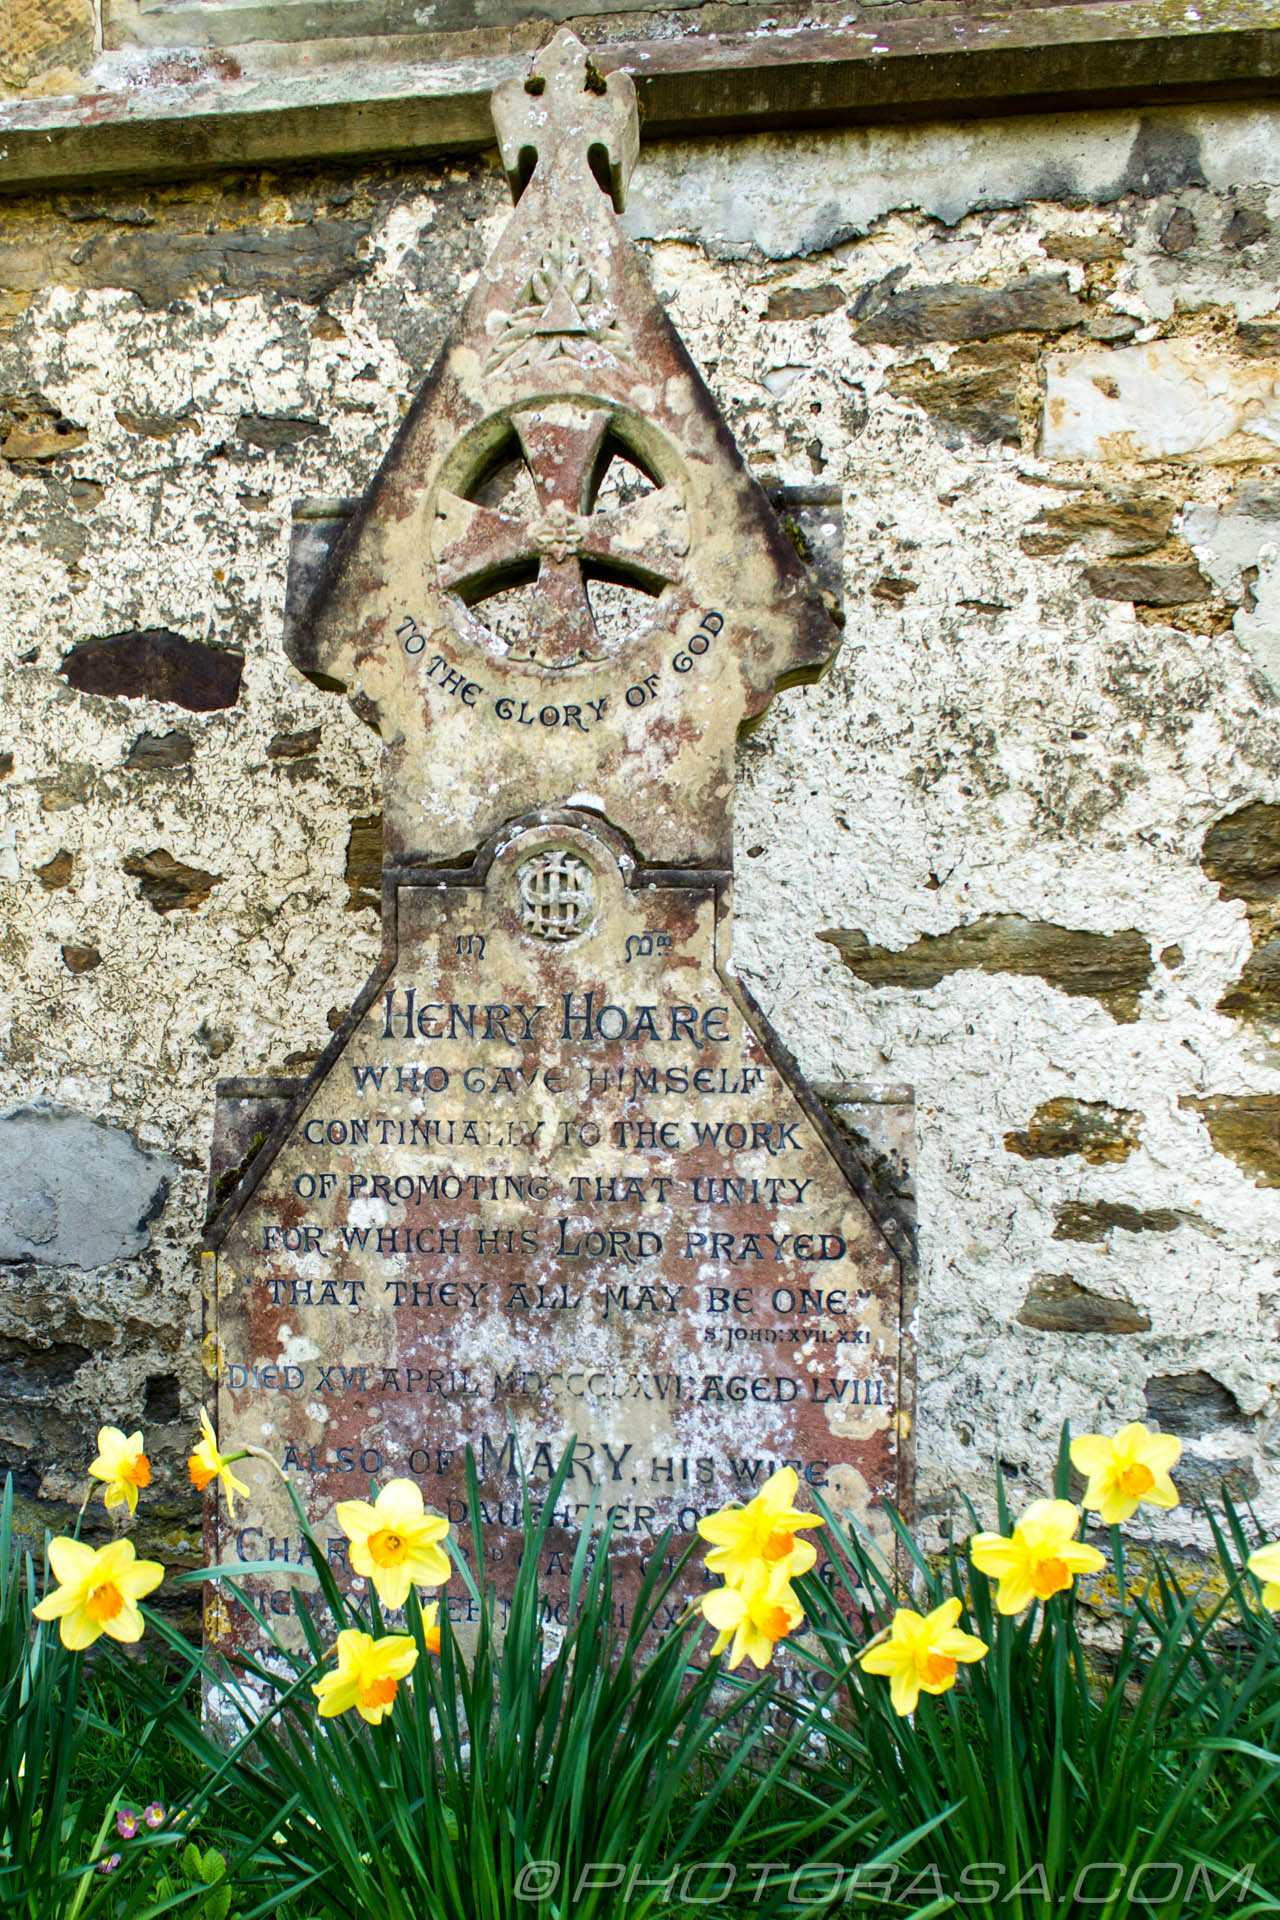 http://photorasa.com/saints-church-staplehurst-kent/decorative-marble-gravestone-2/